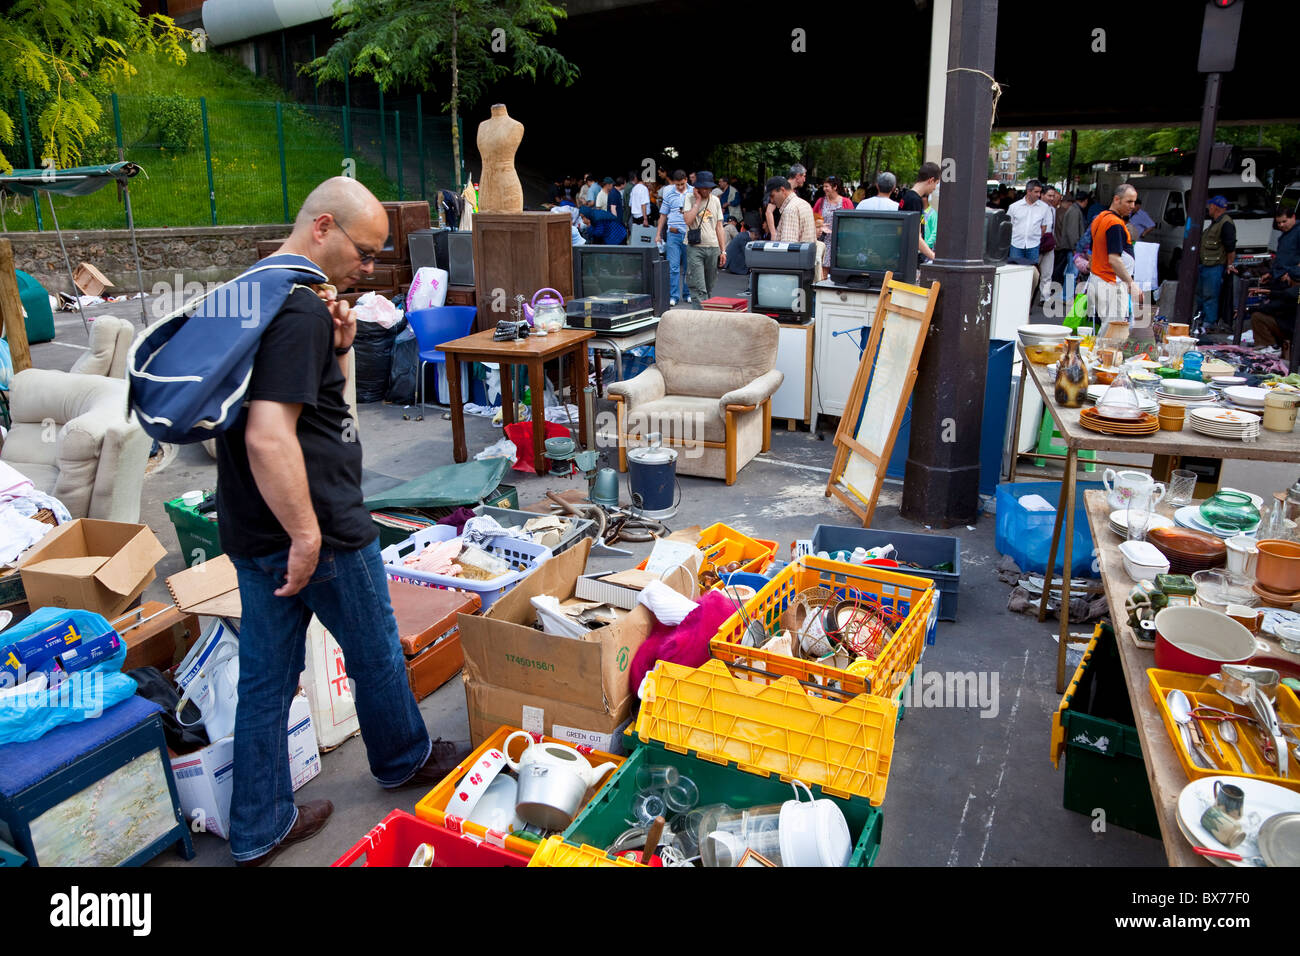 Thieves market les puces de saint ouen flea market porte de stock photo royalty free image - Puces porte de clignancourt ...